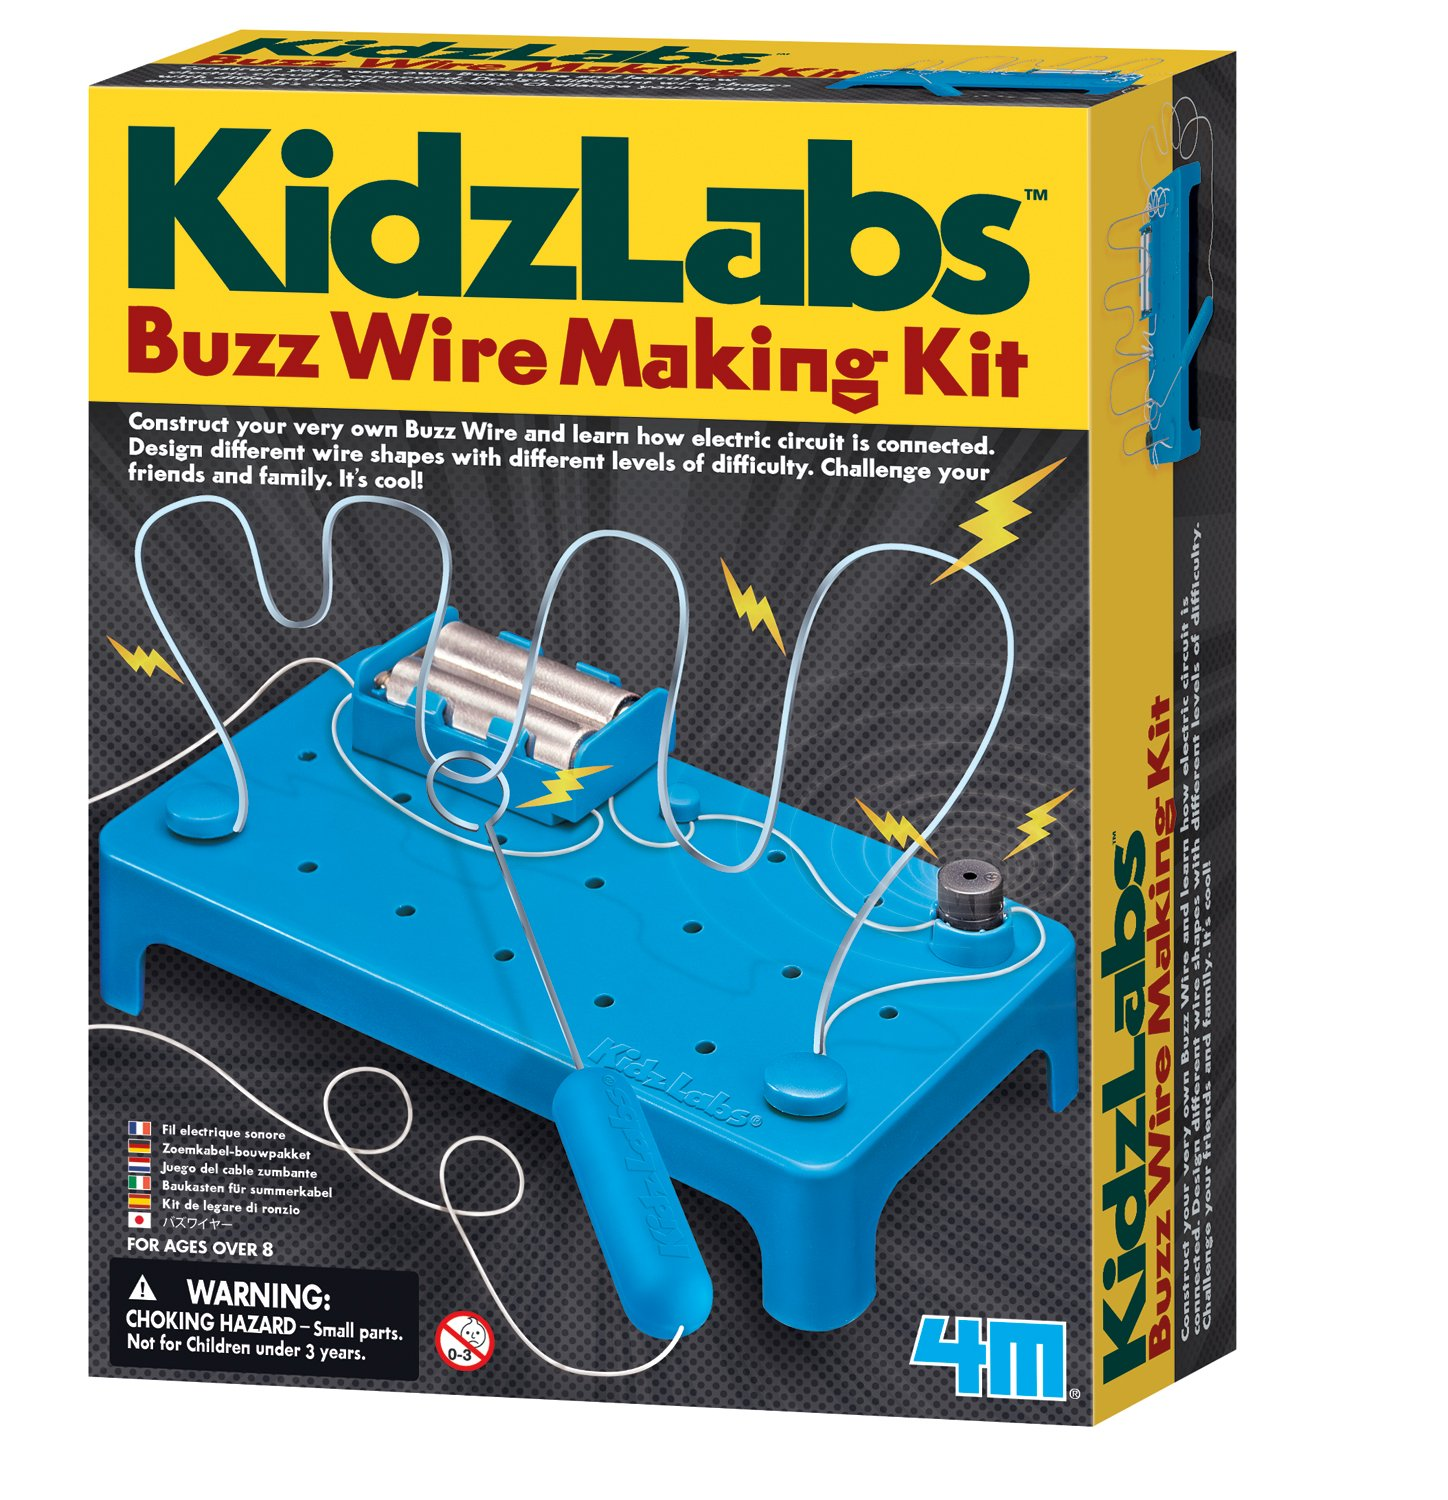 Amazon.com: 4M Kidz Labs Buzz Wire Kit: Toys & Games